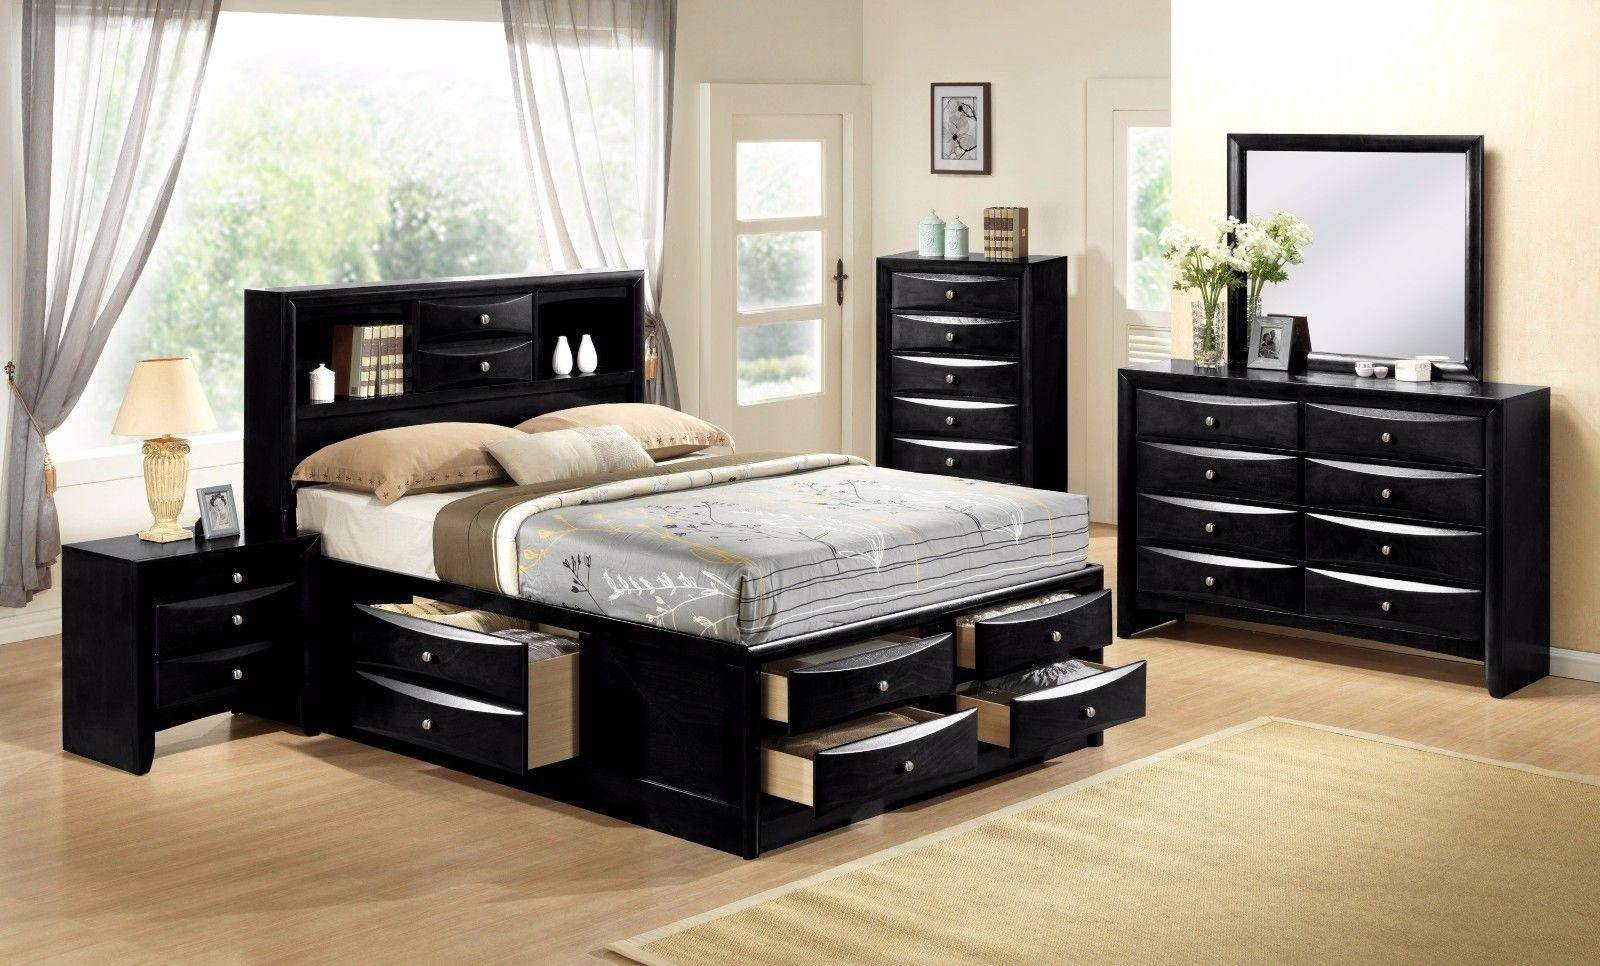 Black Bedroom Set Queen Best Of Crown Mark B4285 Emily Modern Black Finish Storage King Size